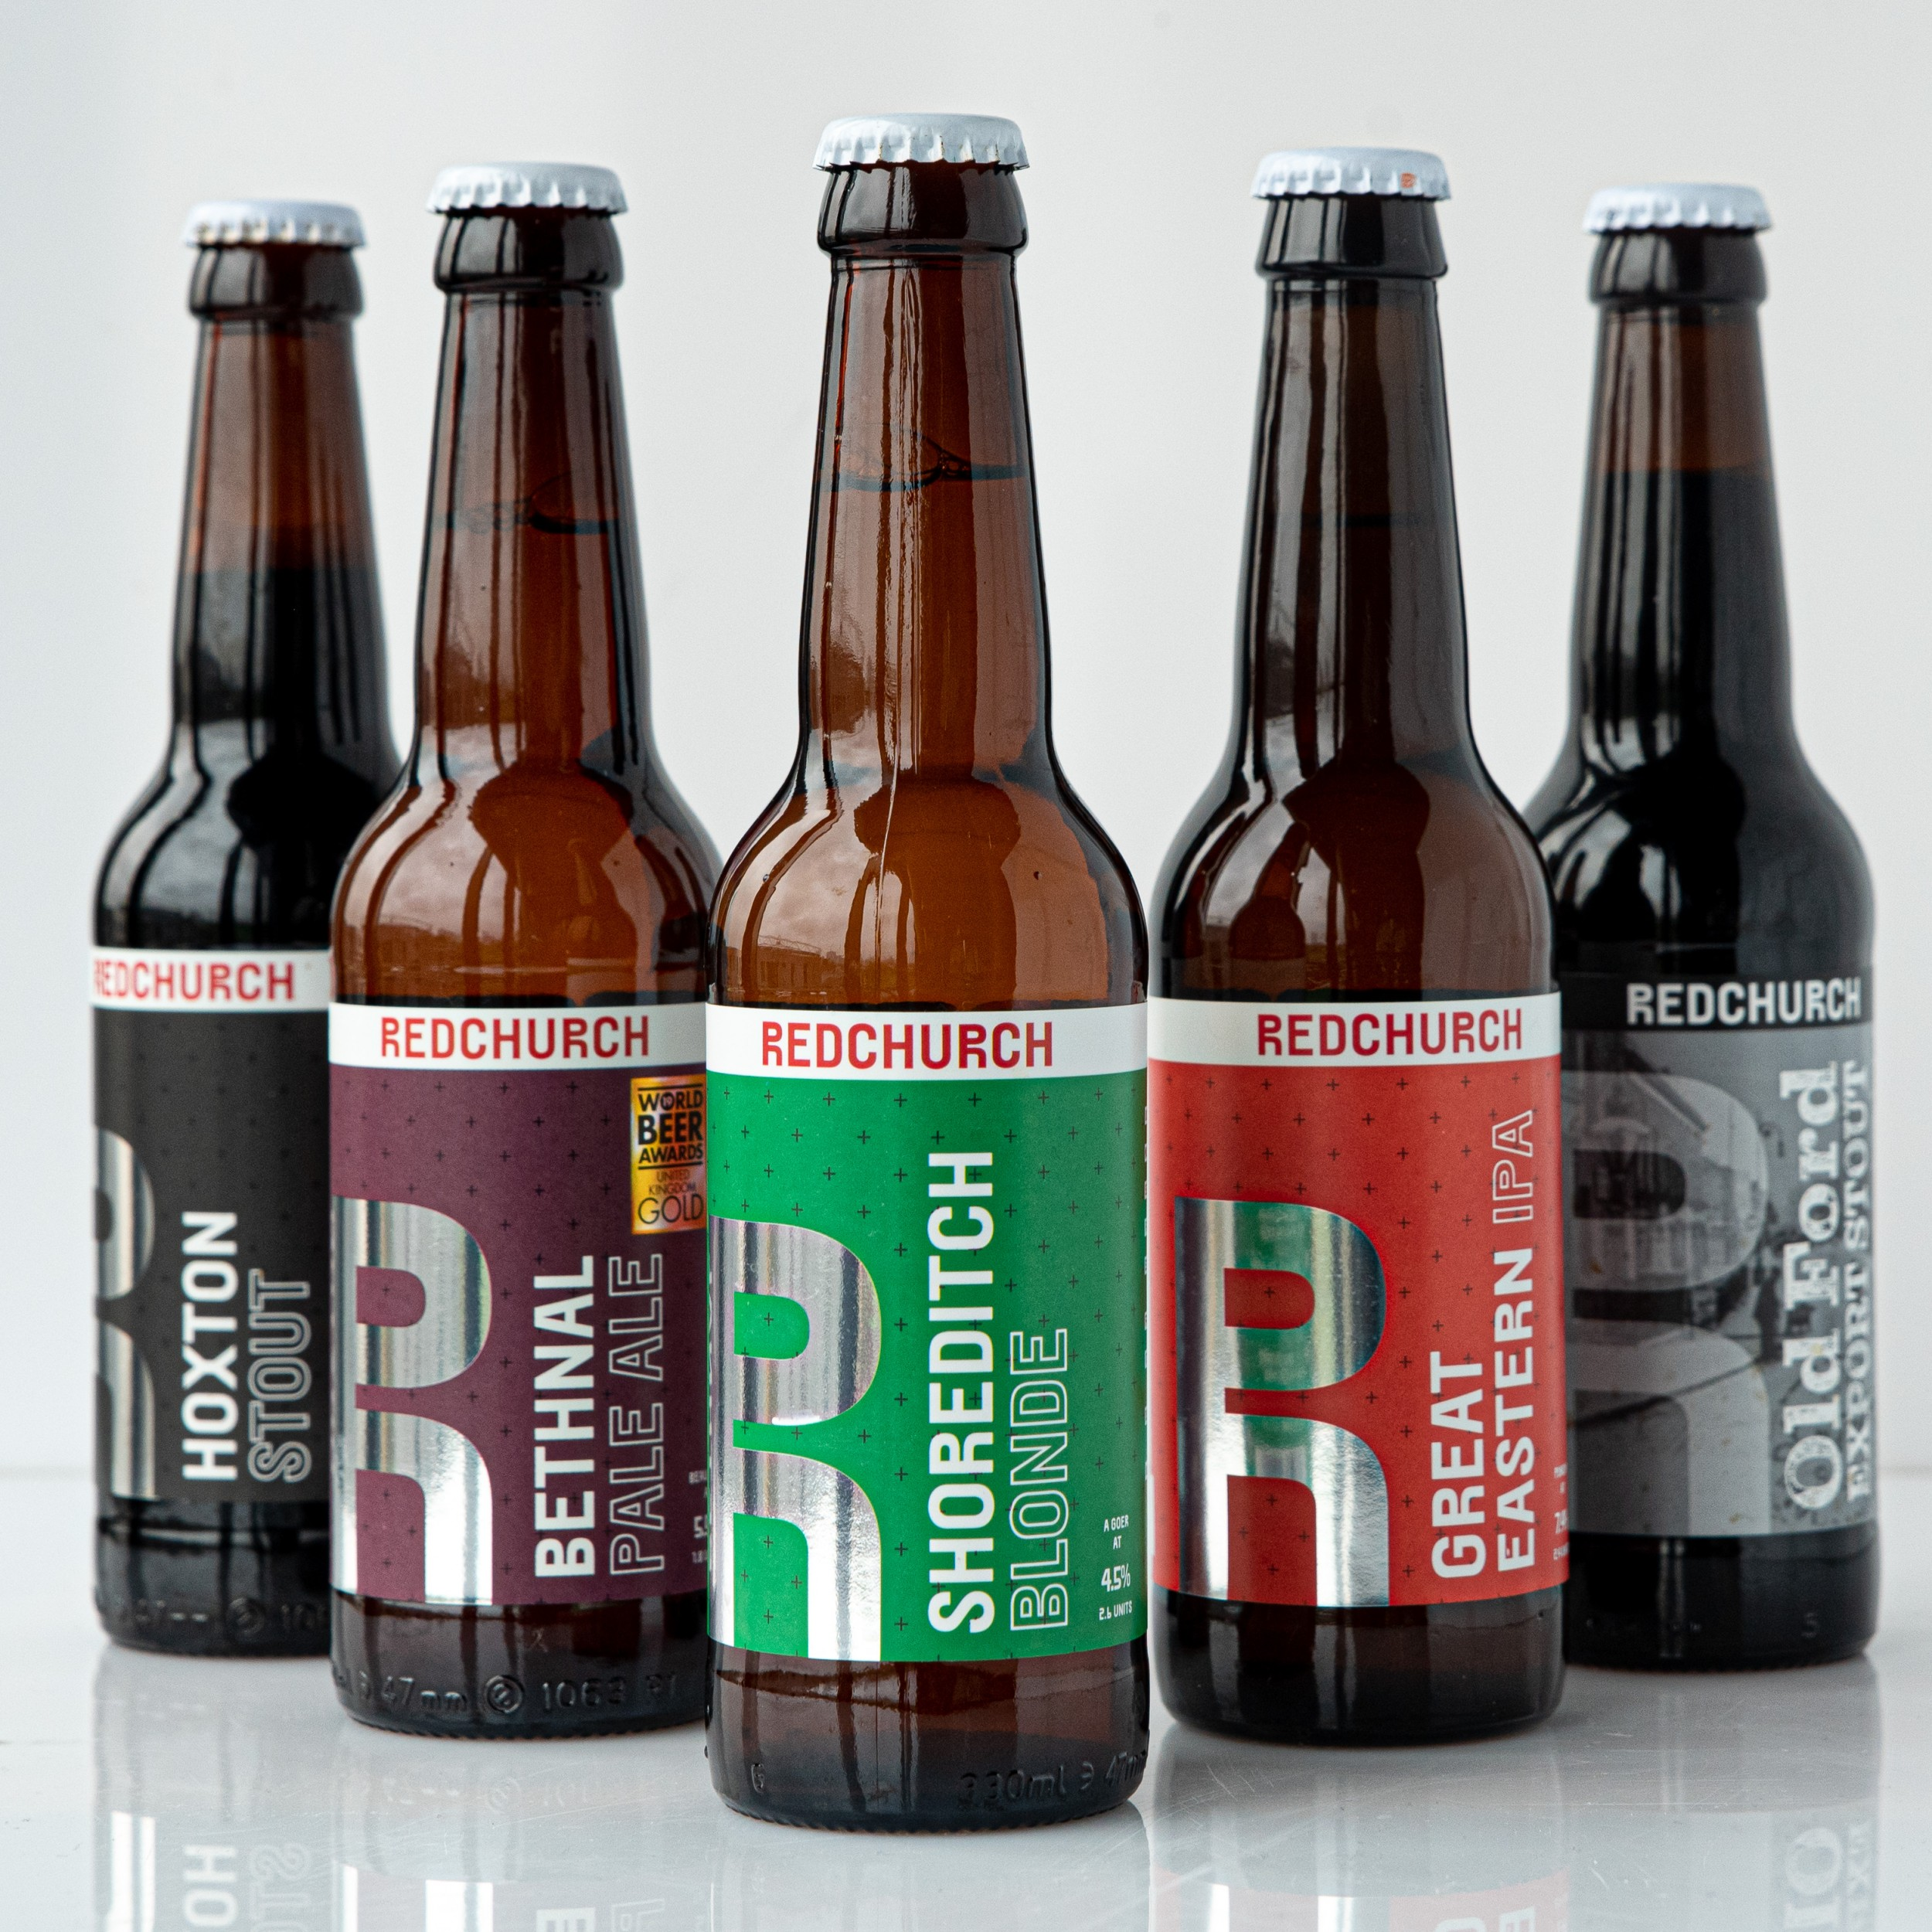 Image of Redchurch Beers